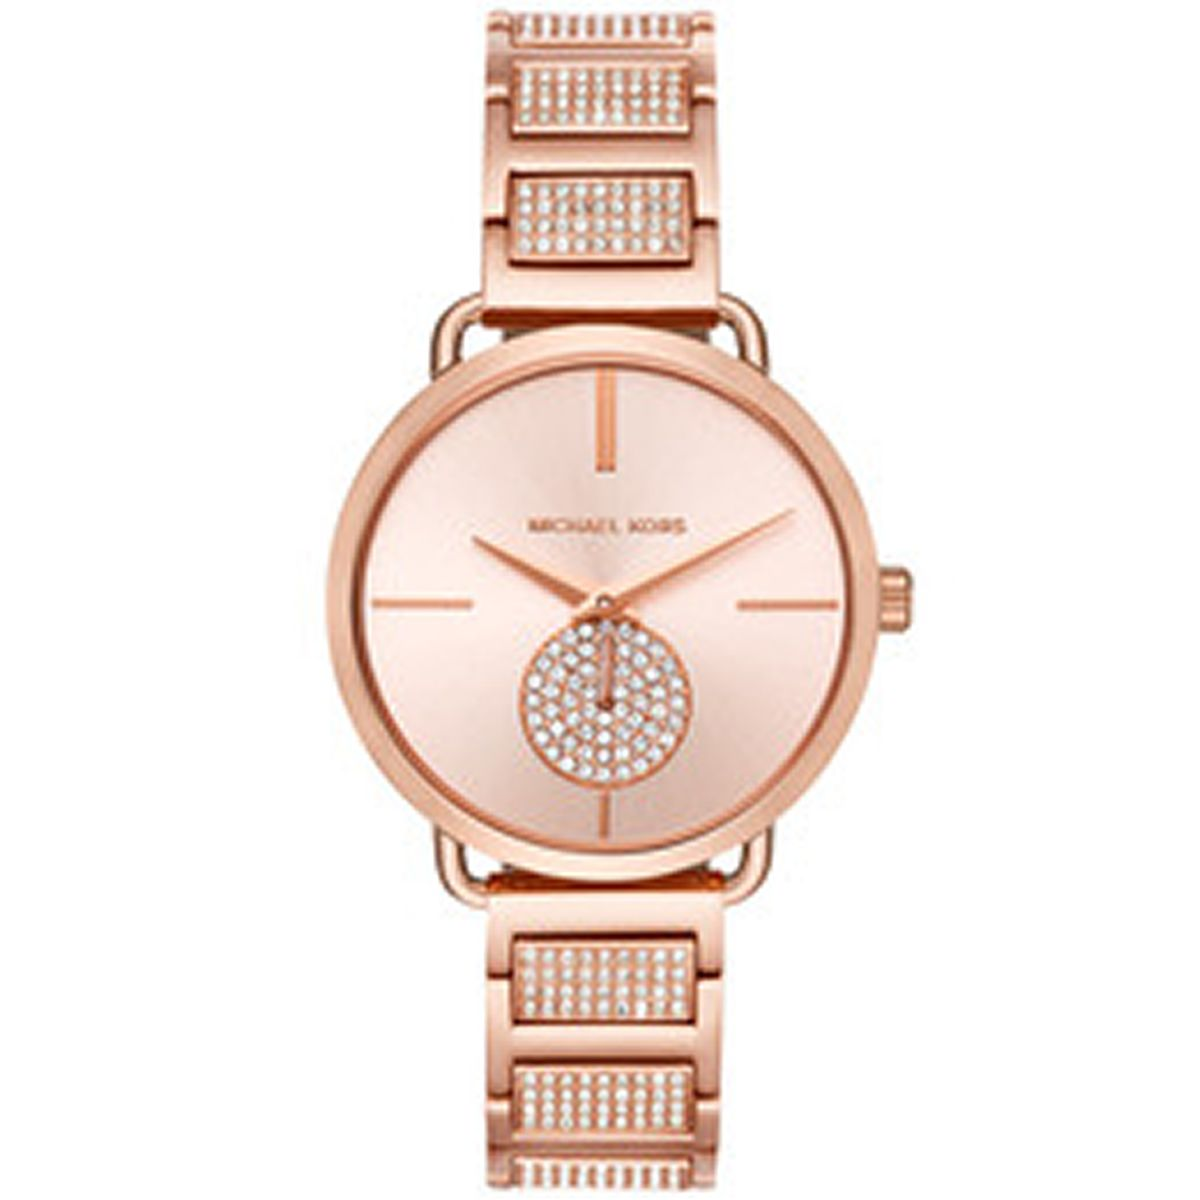 5f70b653636c Rose-Gold Michael Kors Watches - Macy s